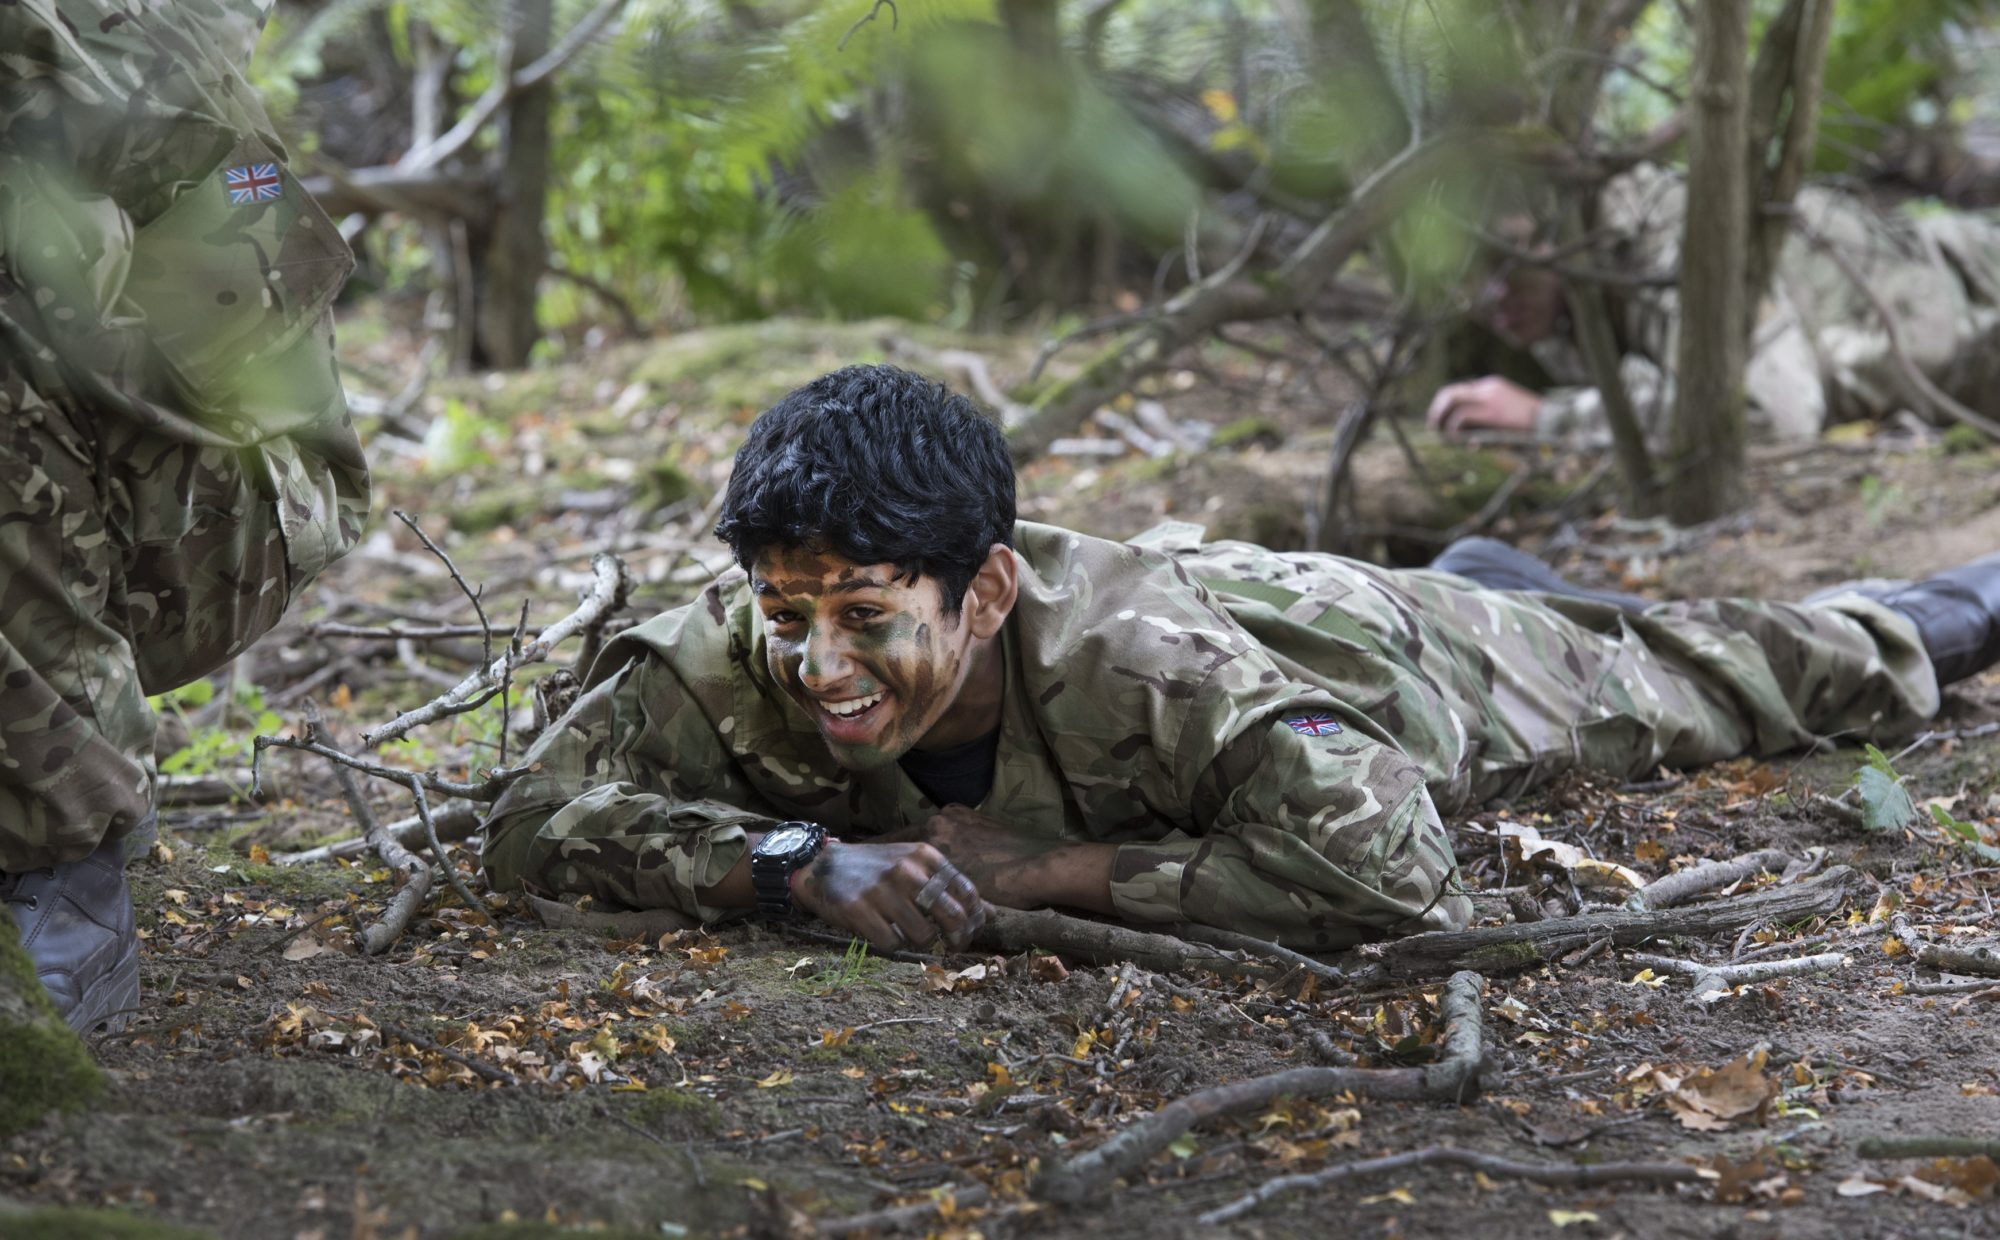 Magdalen College School pupil doing Combined Cadet Force training